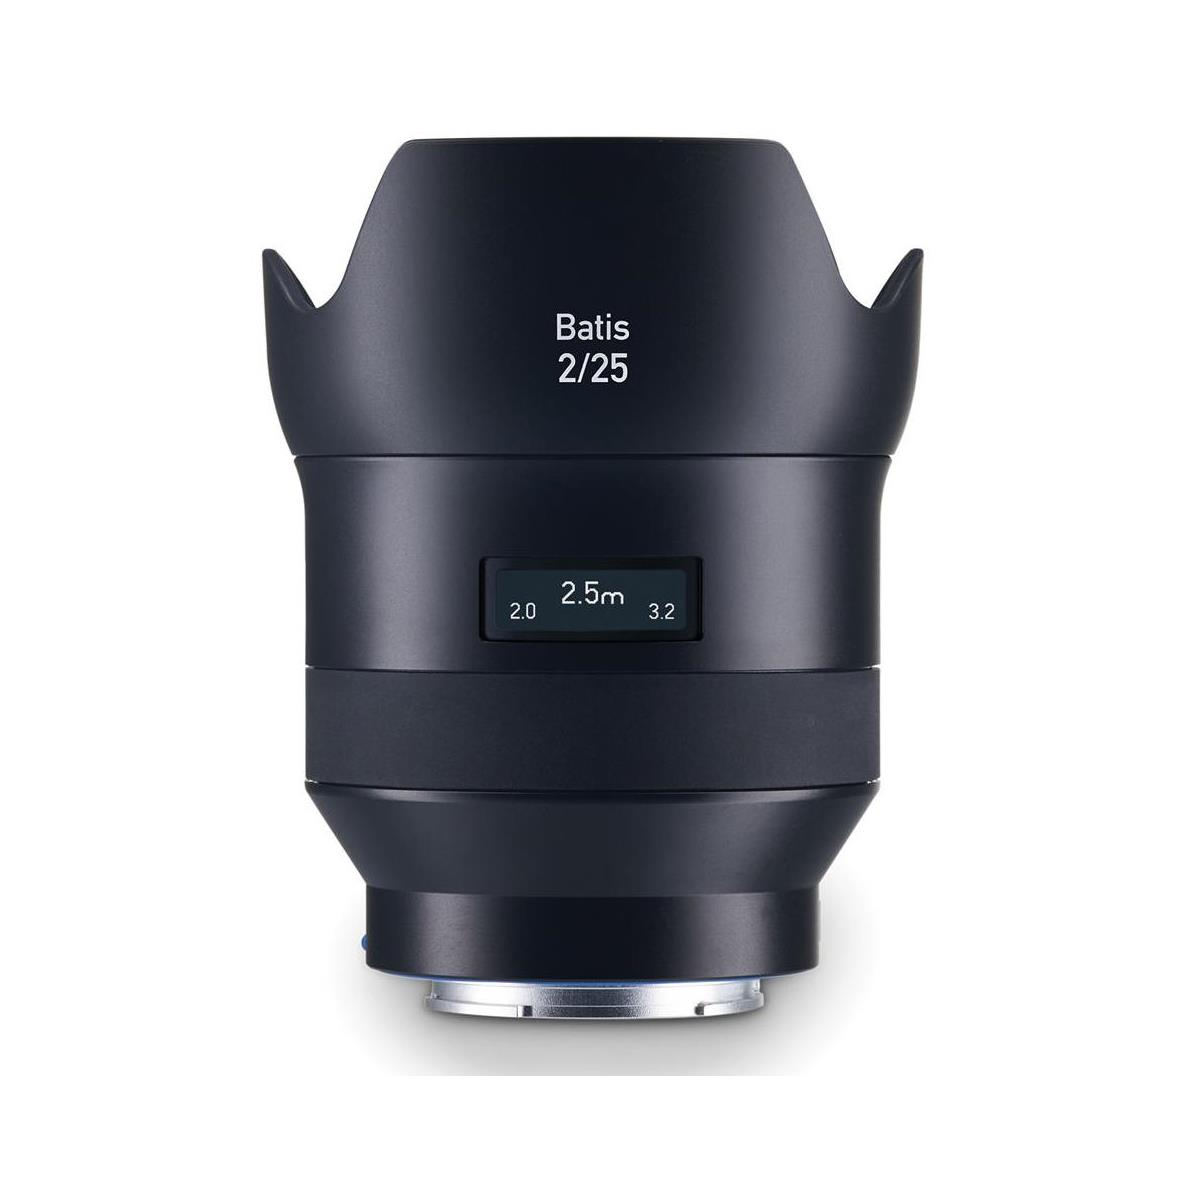 Zeiss Batis 25mm f/2 (FE) lens - this is a very light weight wide angle and wide aperture lens that is very convenient for using in low light situations where wide angle hand held shots are required. The colors from this lens are very nice and the lens is sharp. This is a nice lens for video work in low light conditions.